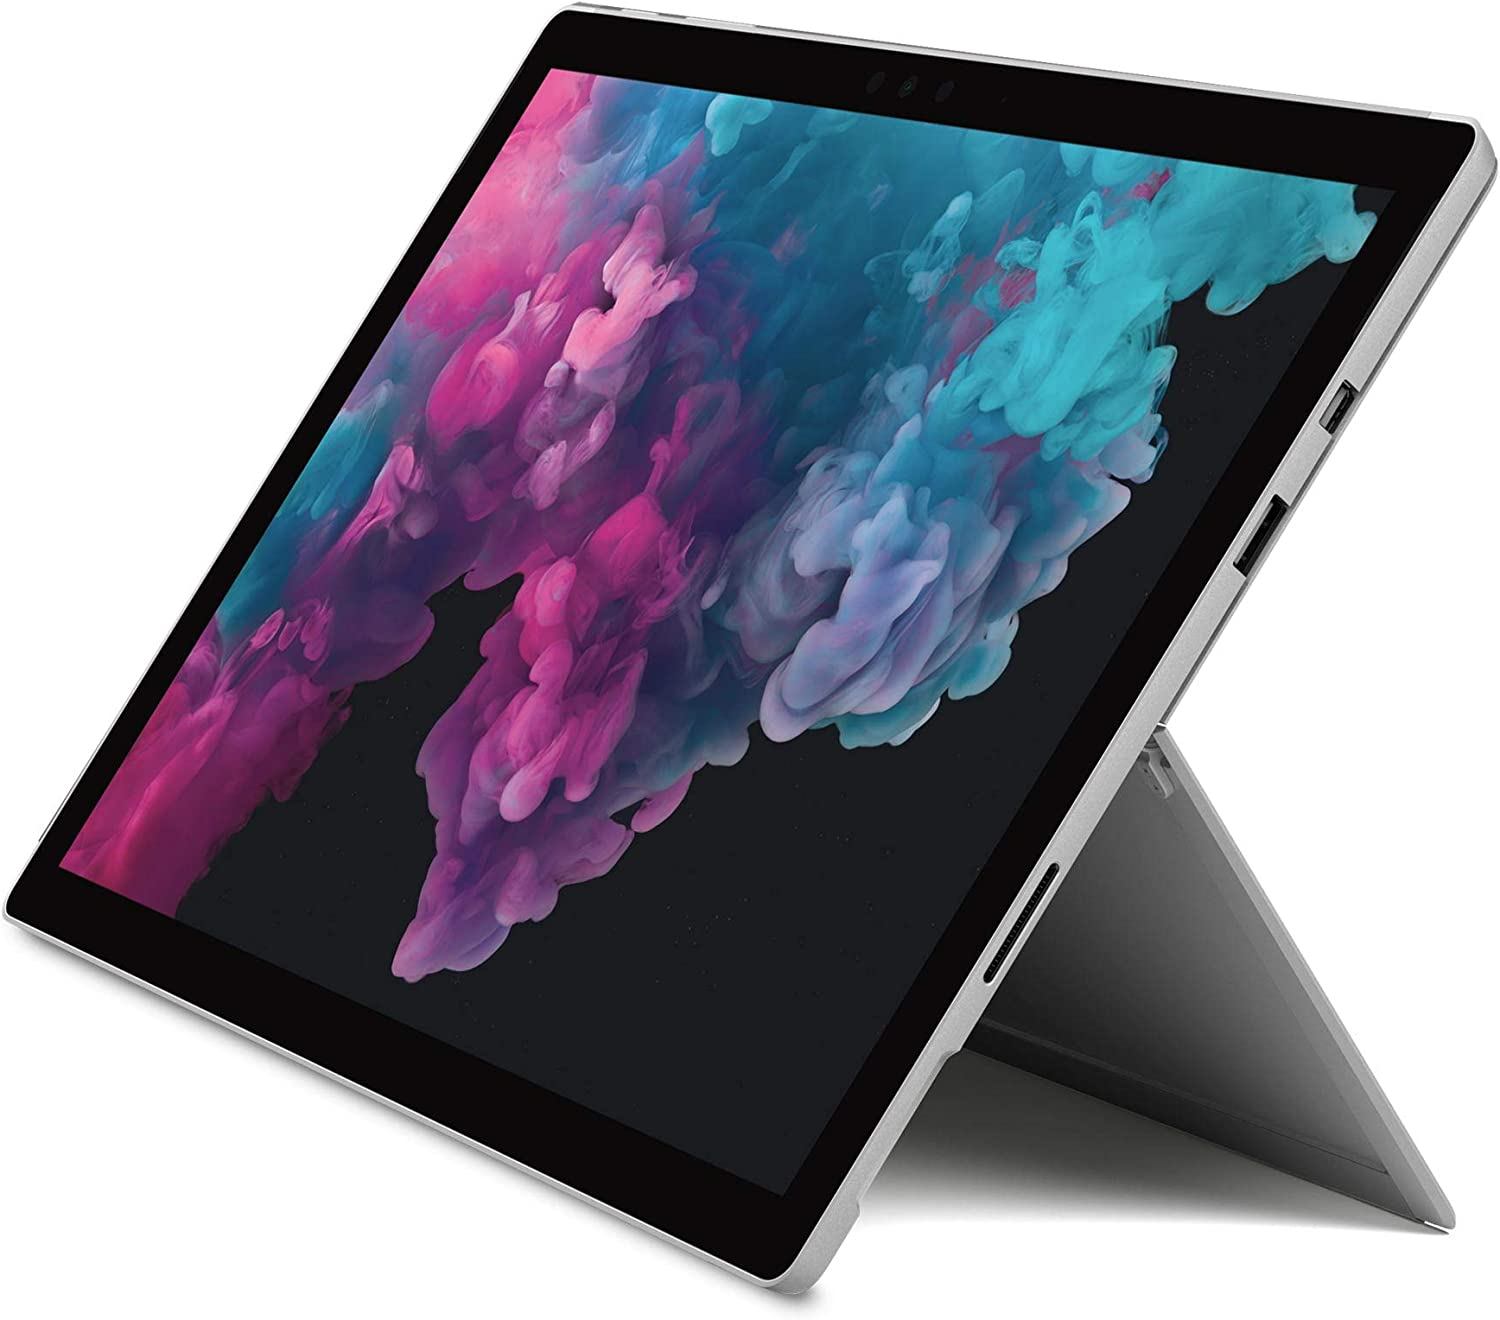 Microsoft Surface Pro 6 - Ordenador portátil 2 en 1, 12.3'' (Intel Core i5-8250U, 8GB RAM, 128GB SSD, Intel Graphics, Windows 10 Home) Color Plata